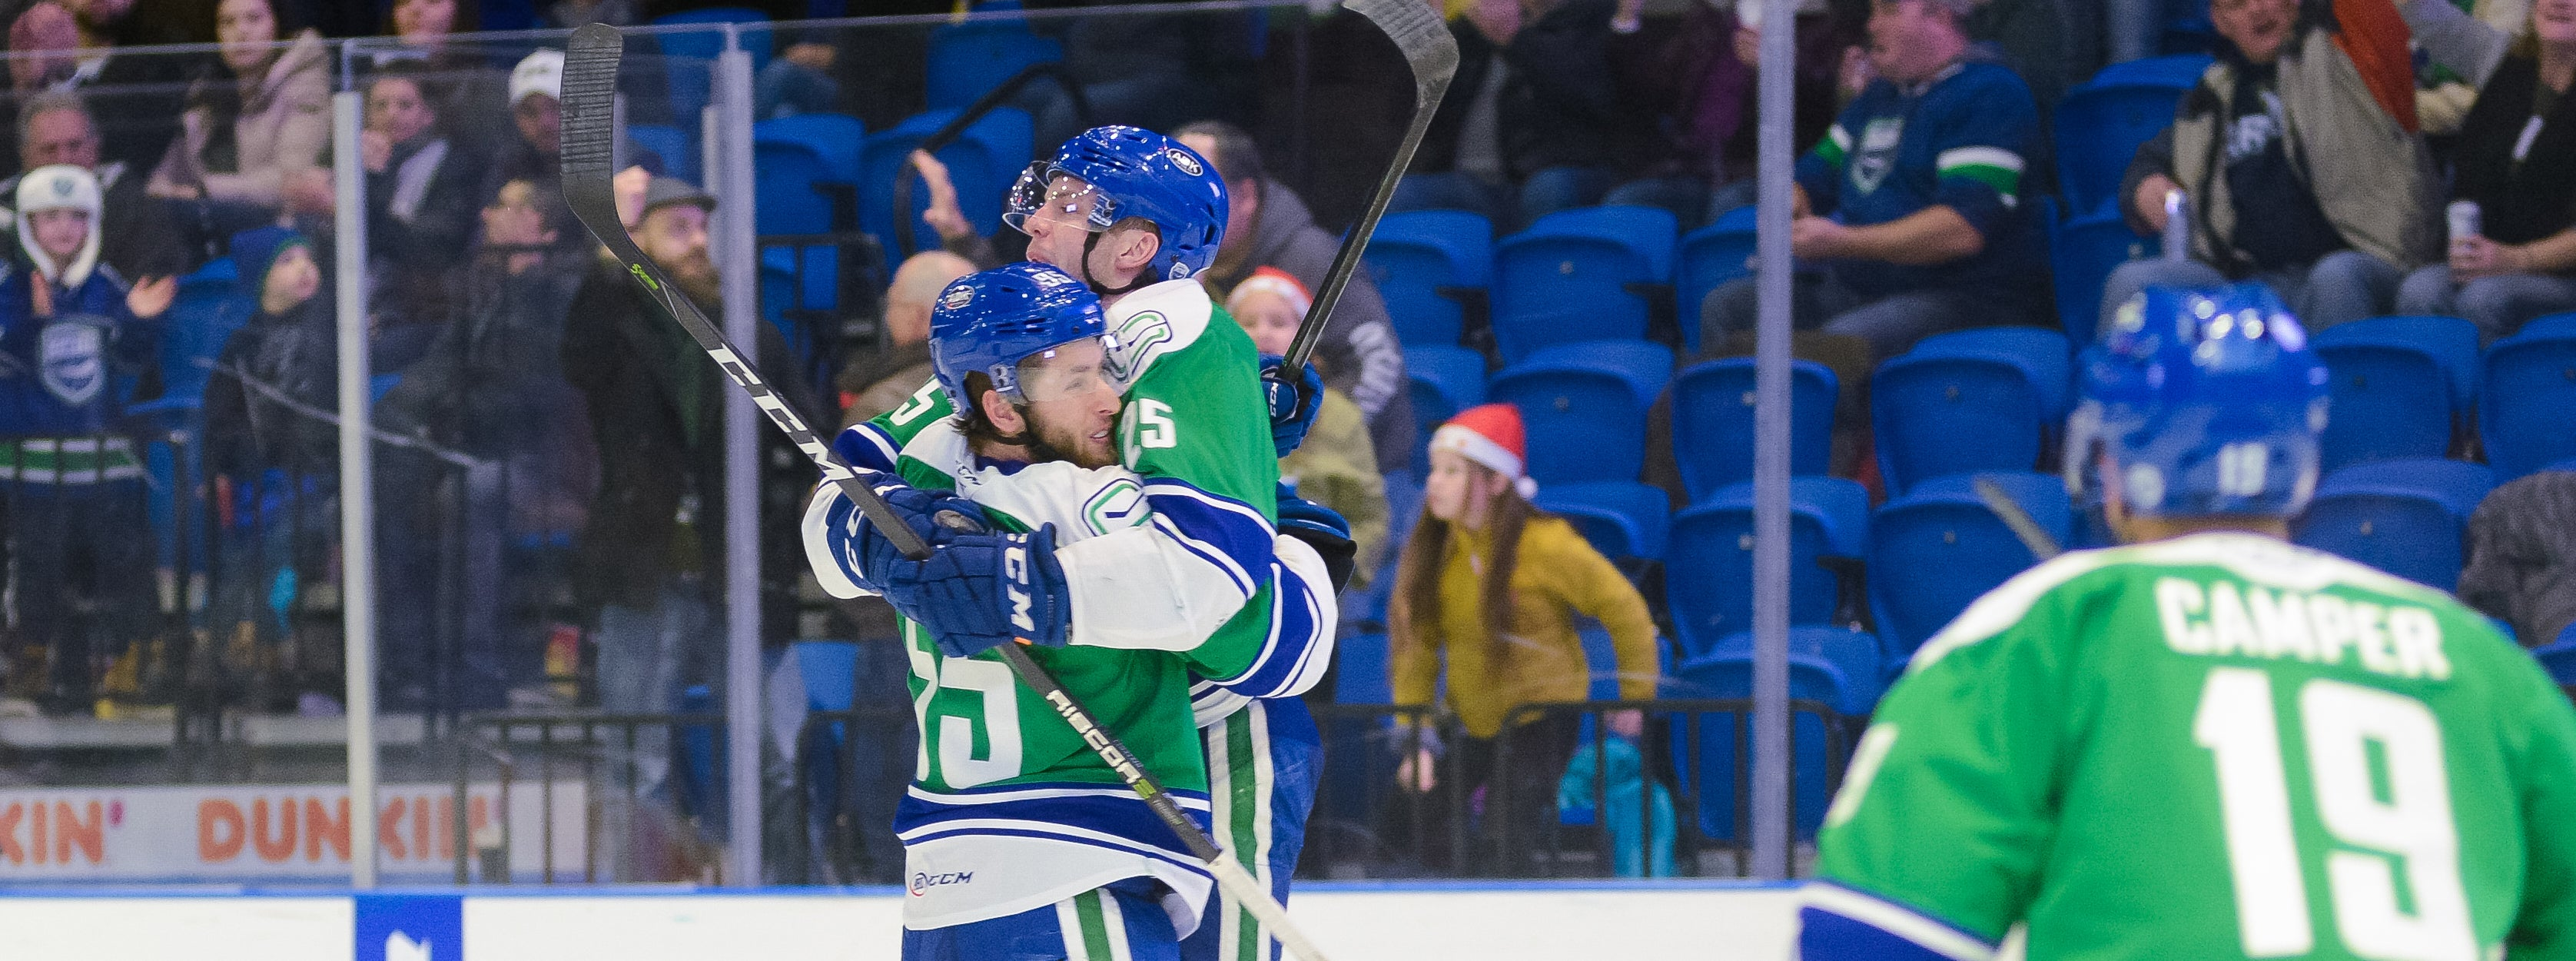 RAFFERTY, POWER PLAY PUSH COMETS TO VICTORY OVER LAVAL